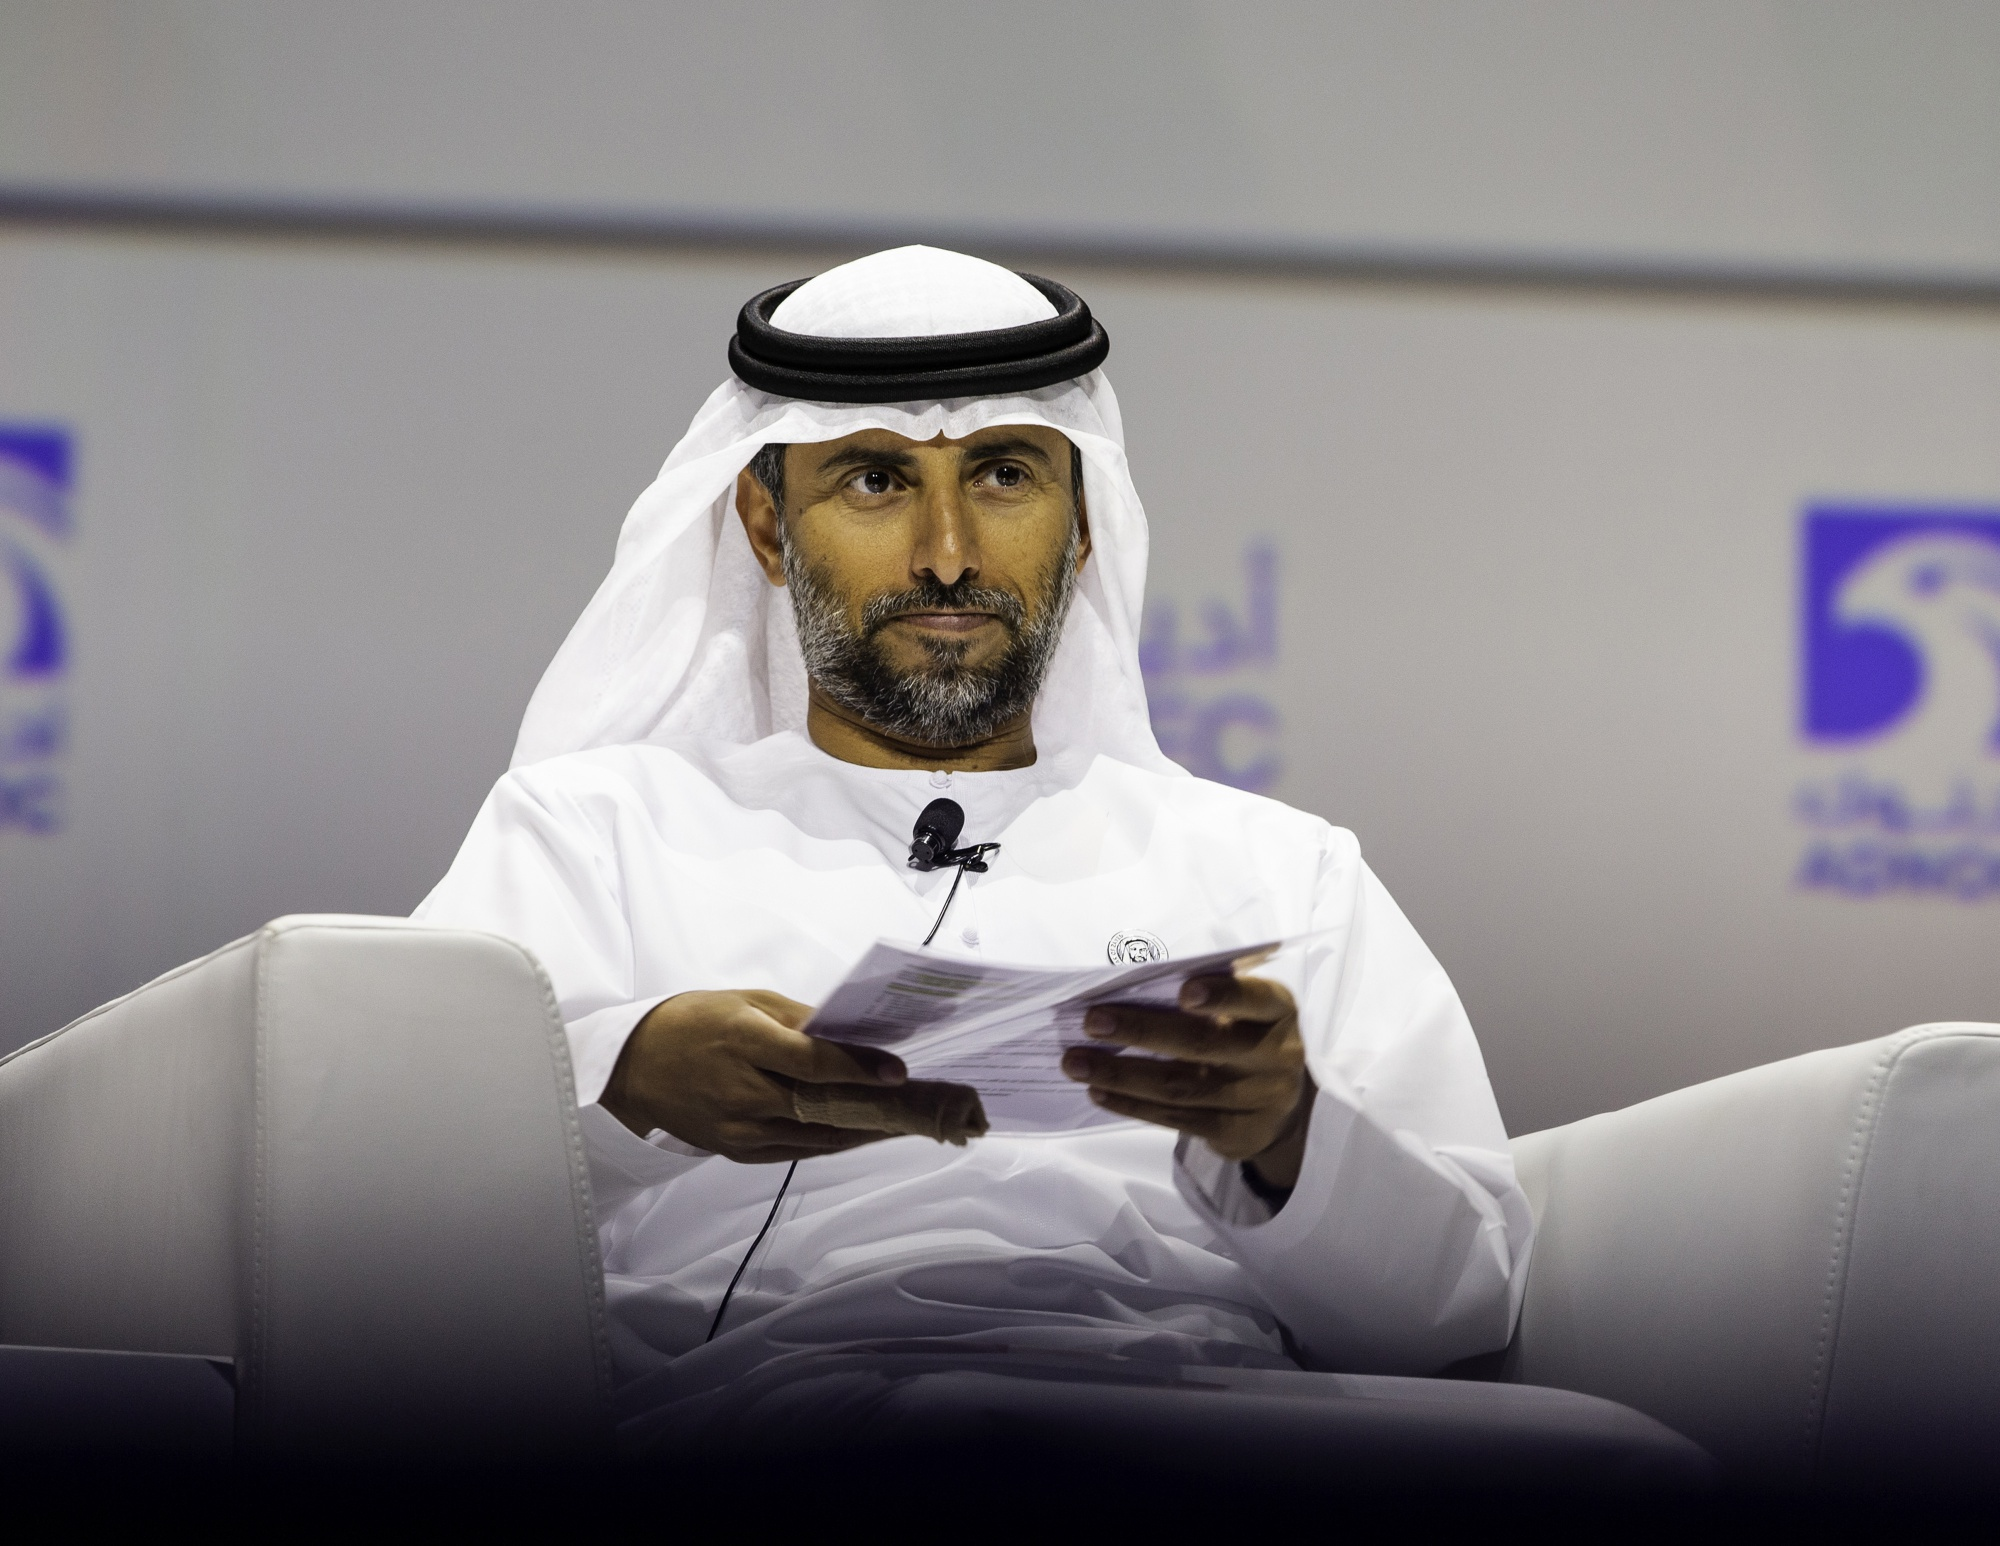 Suhail Al Mazrouei, United Arab Emirates' energy minister, pauses at the Abu Dhabi International Petroleum Exhibition & Conference (ADIPEC) in Abu Dhabi, United Arab Emirates, on Tuesday, Nov. 13, 2018.  Photographer: Christopher Pike/Bloomberg